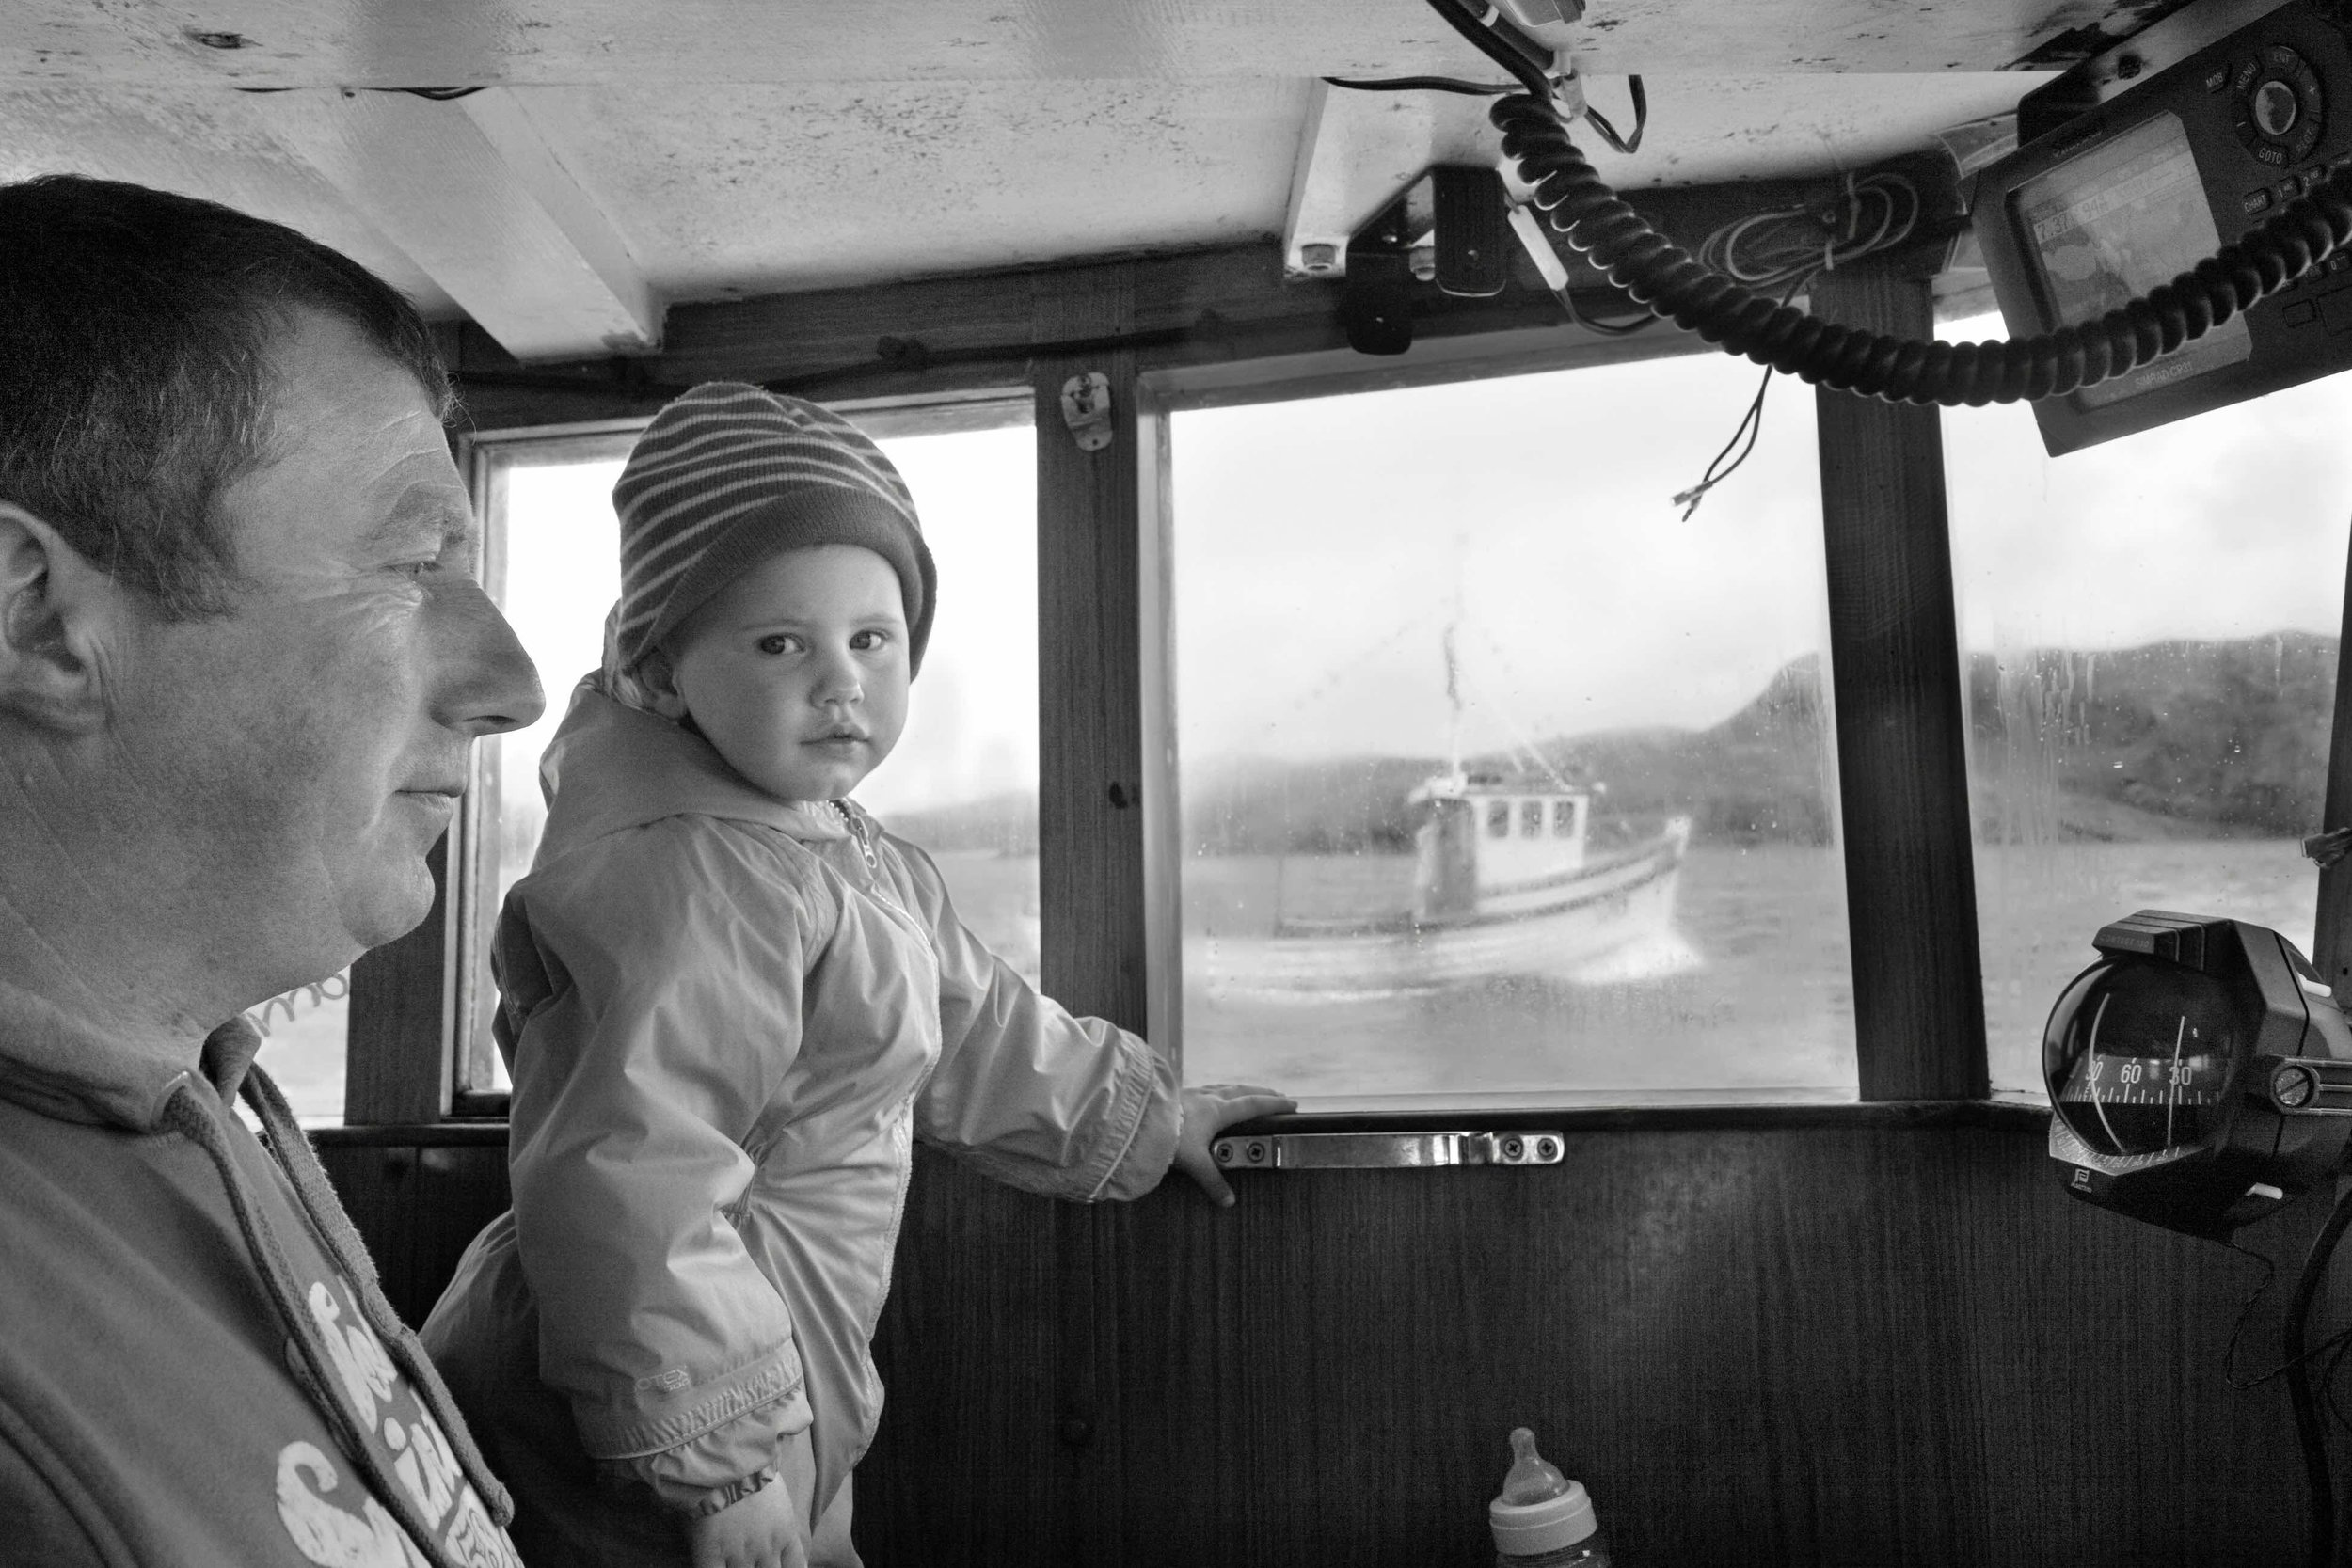 Iain and Katie, 2011 from The Vatersay Series